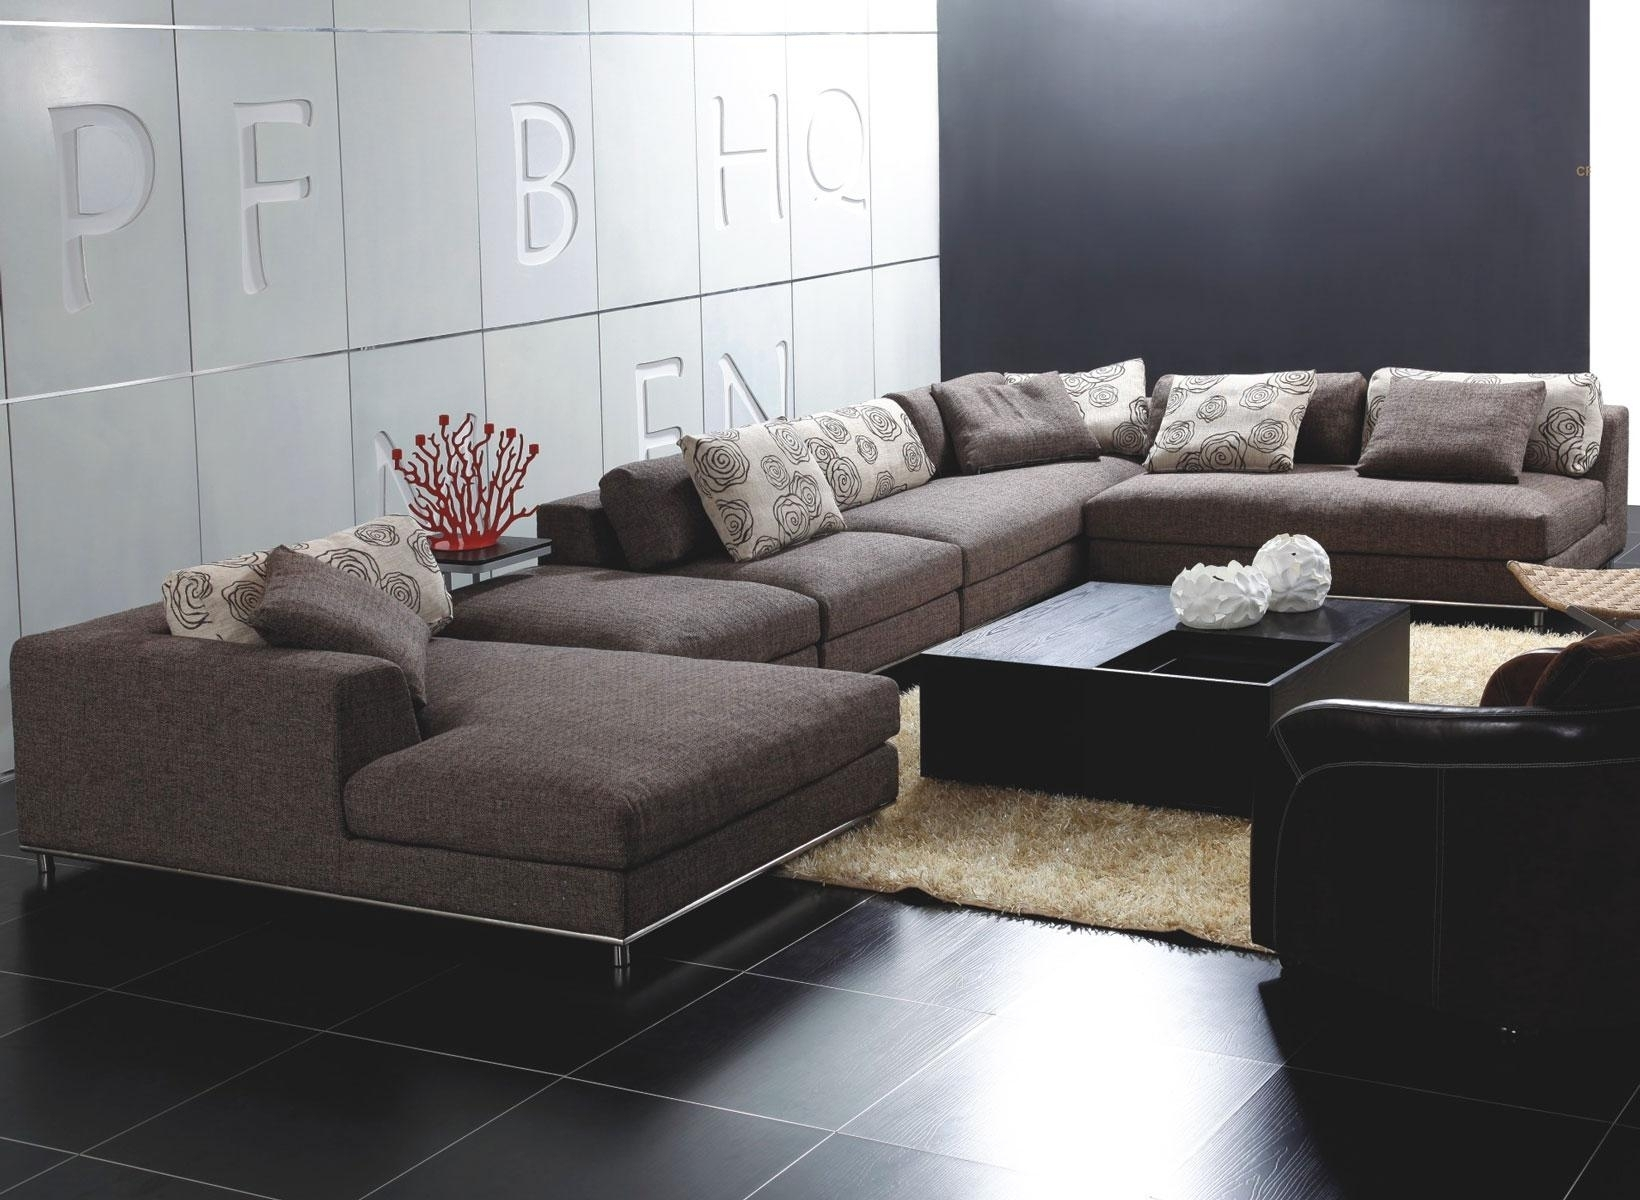 Modern Microfiber Sectional Sofas • Sectional Sofa Within Modern Microfiber Sectional Sofas (View 6 of 10)